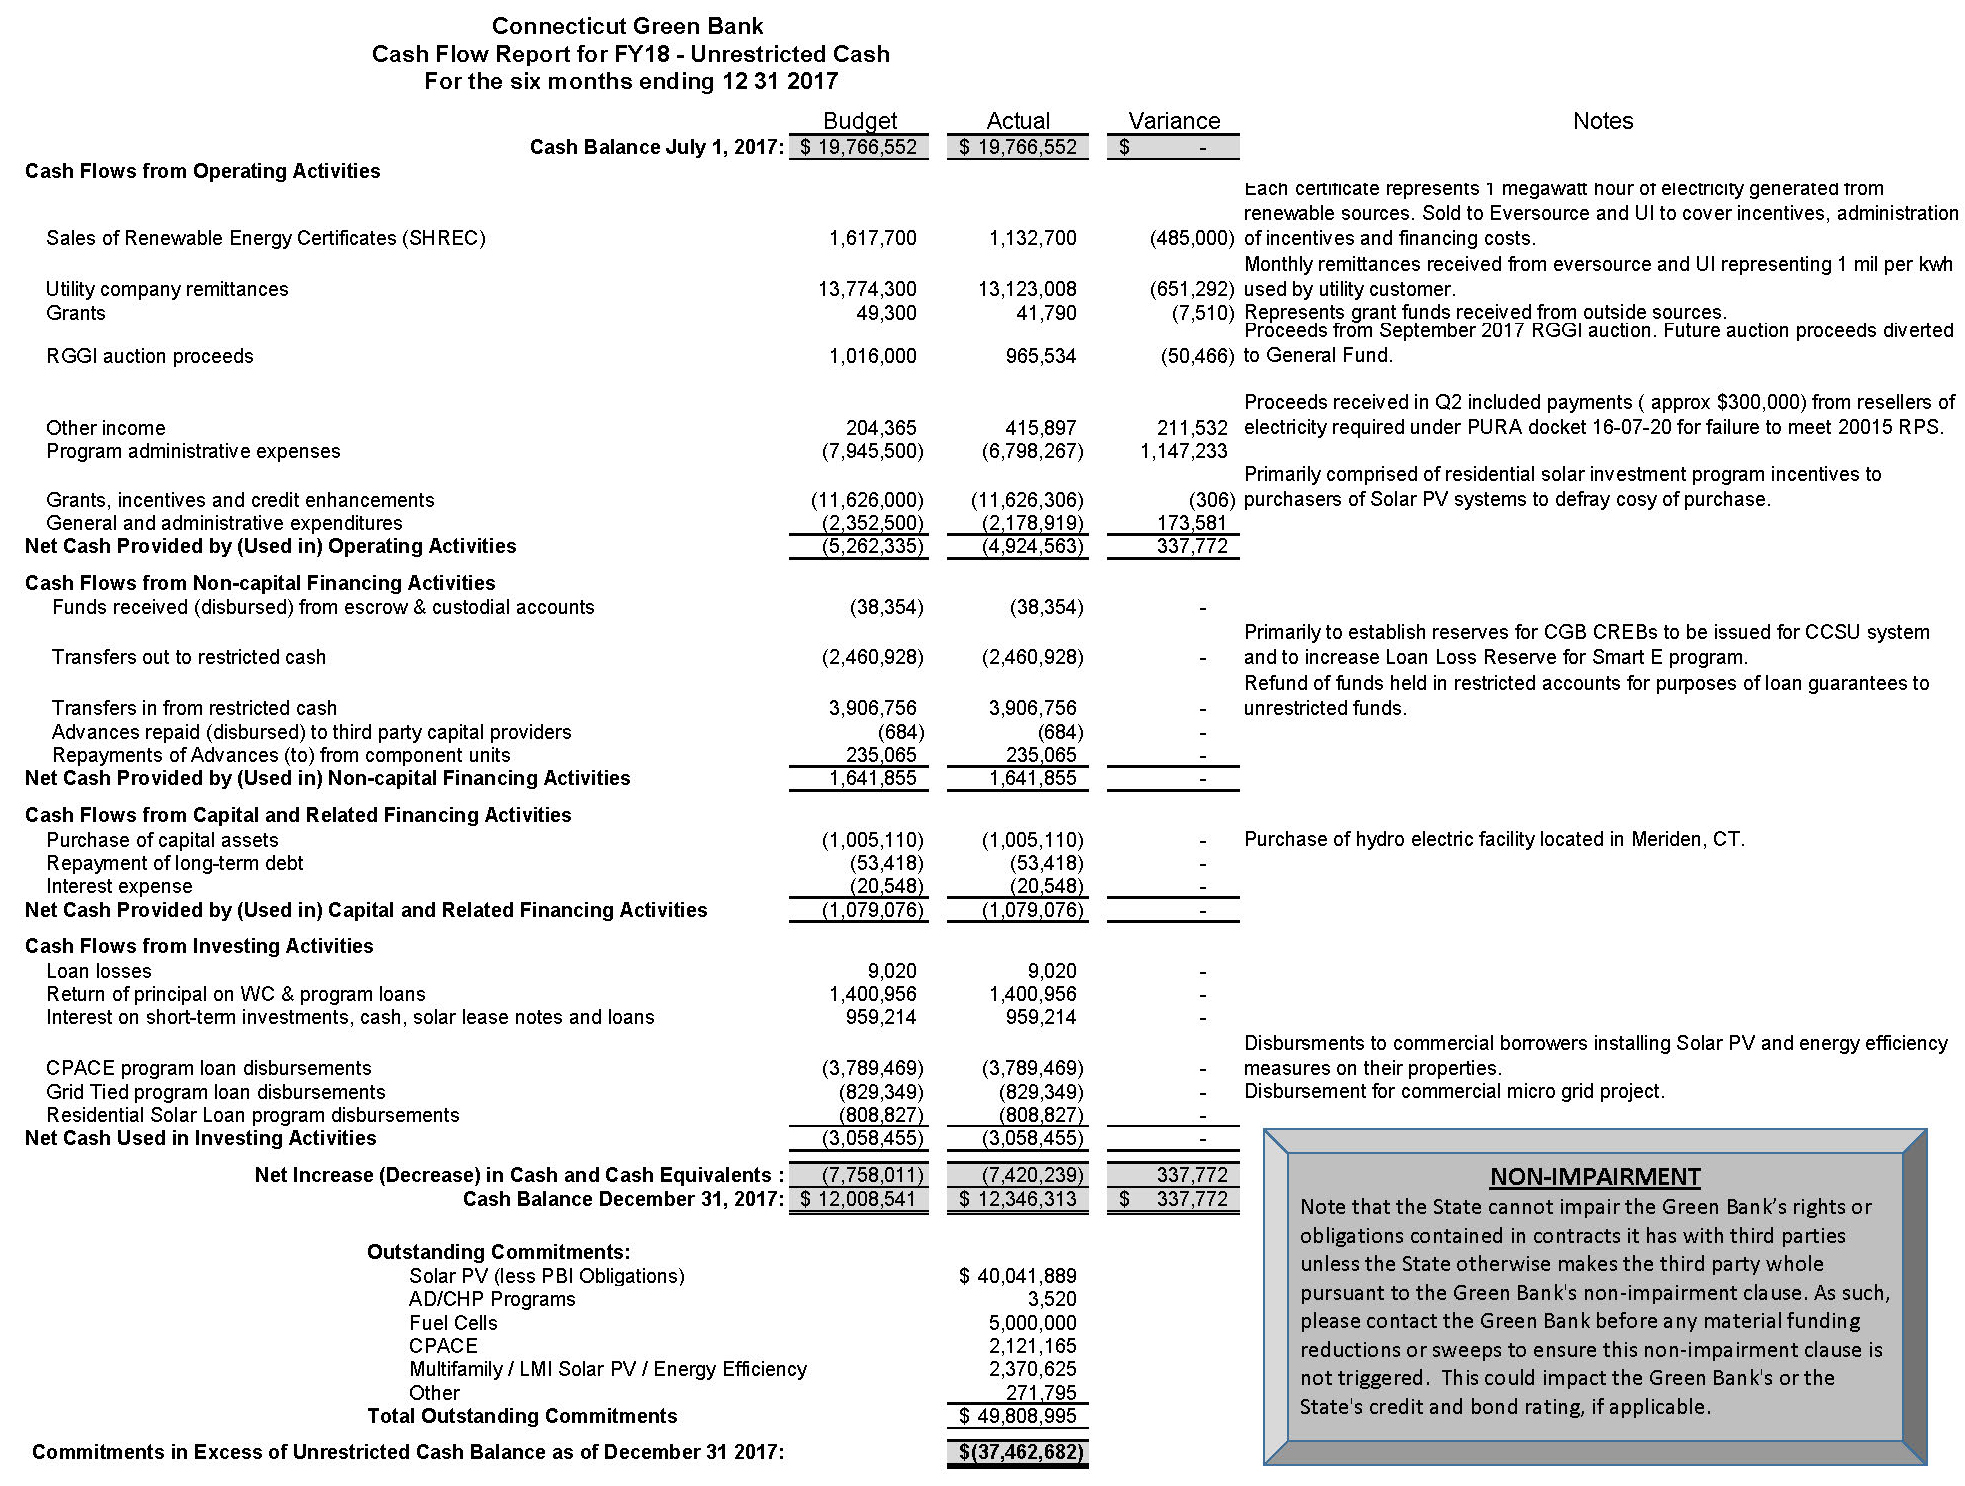 FY18 Q2 12 31 2017 CGB Cash Flow Report_Submitted_U_Page_1